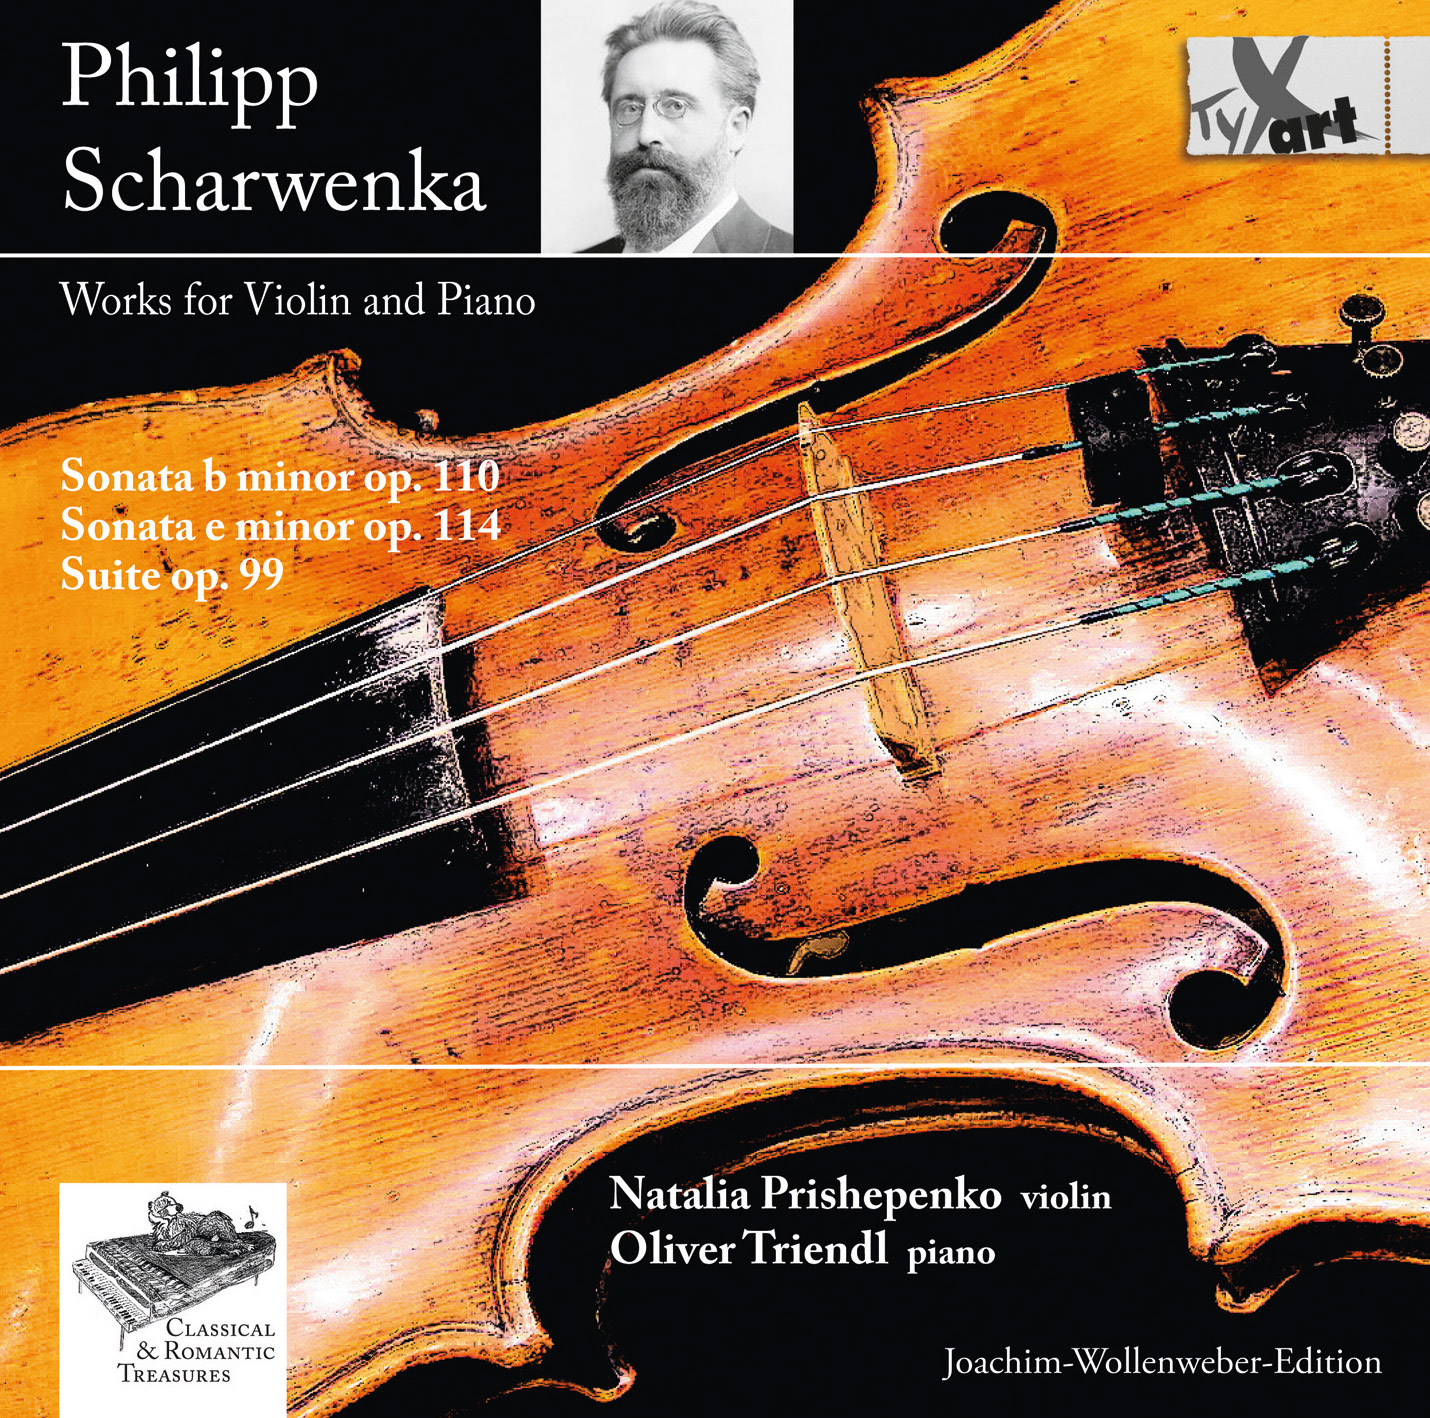 Philipp Scharwenka: Works for Violin and Piano - Prishepenko - Triendl